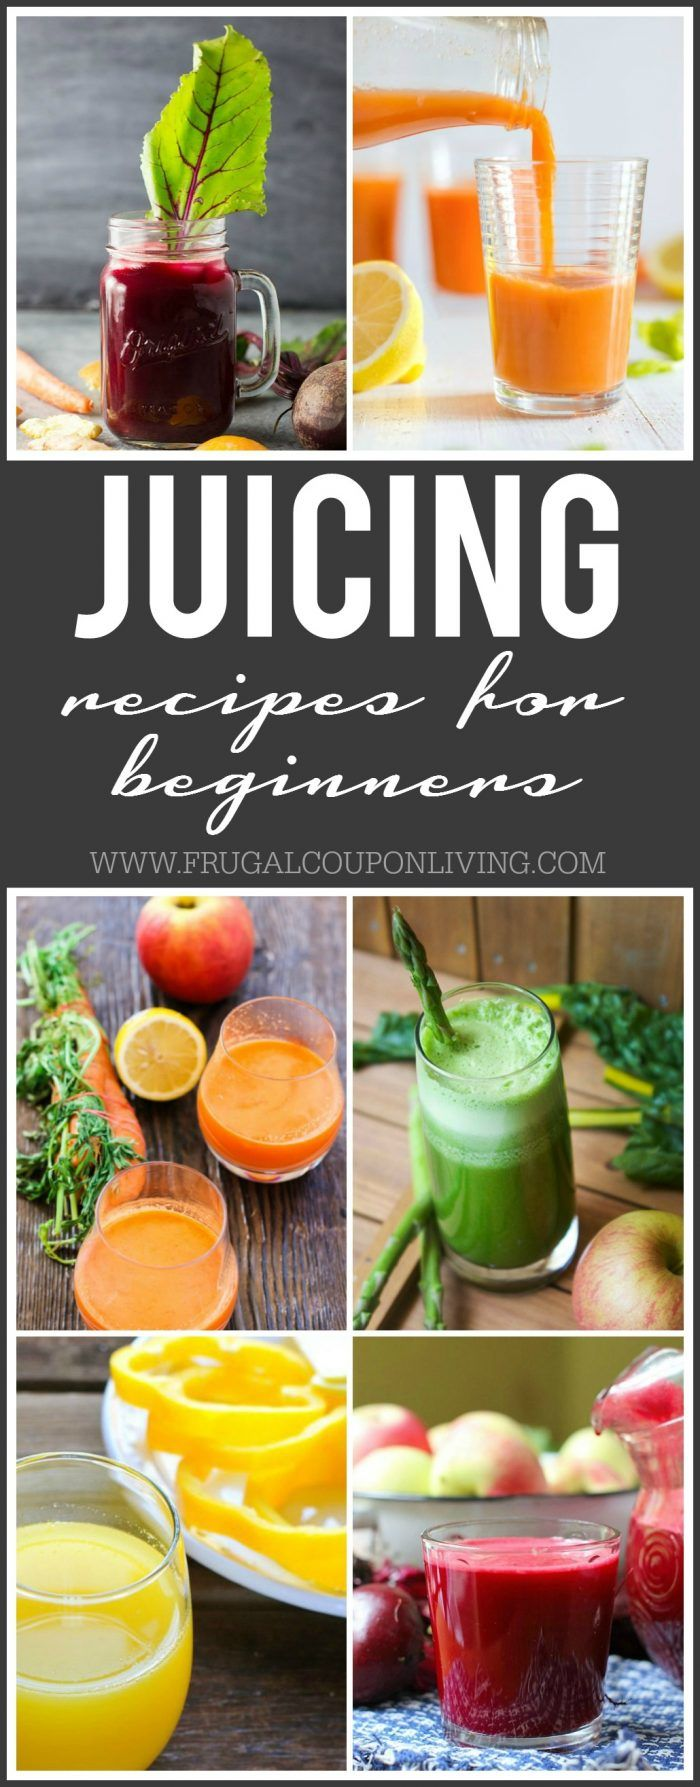 Juicing Recipes with inspiration from the popular documentary Fat Sick and Nearly Dead  | Juice Recipes for the Beginner on Frugal Coupon Living. Healthy drink ideas using vegetables and fruits.